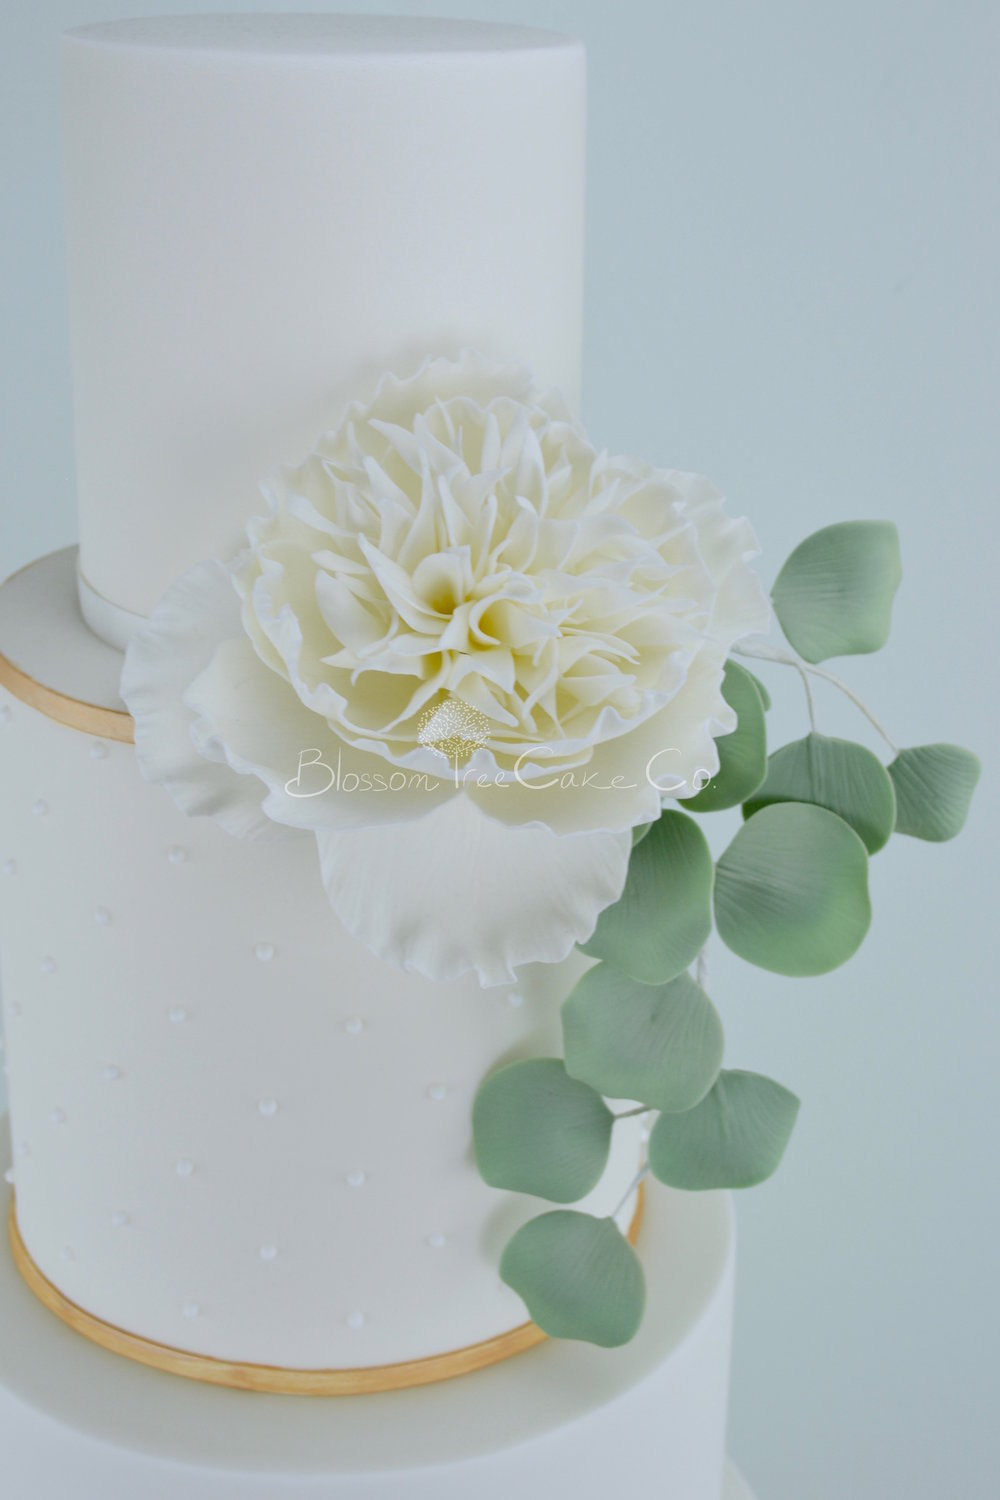 Peony and Eucalyptus wedding cake by Blossom Tree Cake Company Harrogate North Yorkshire